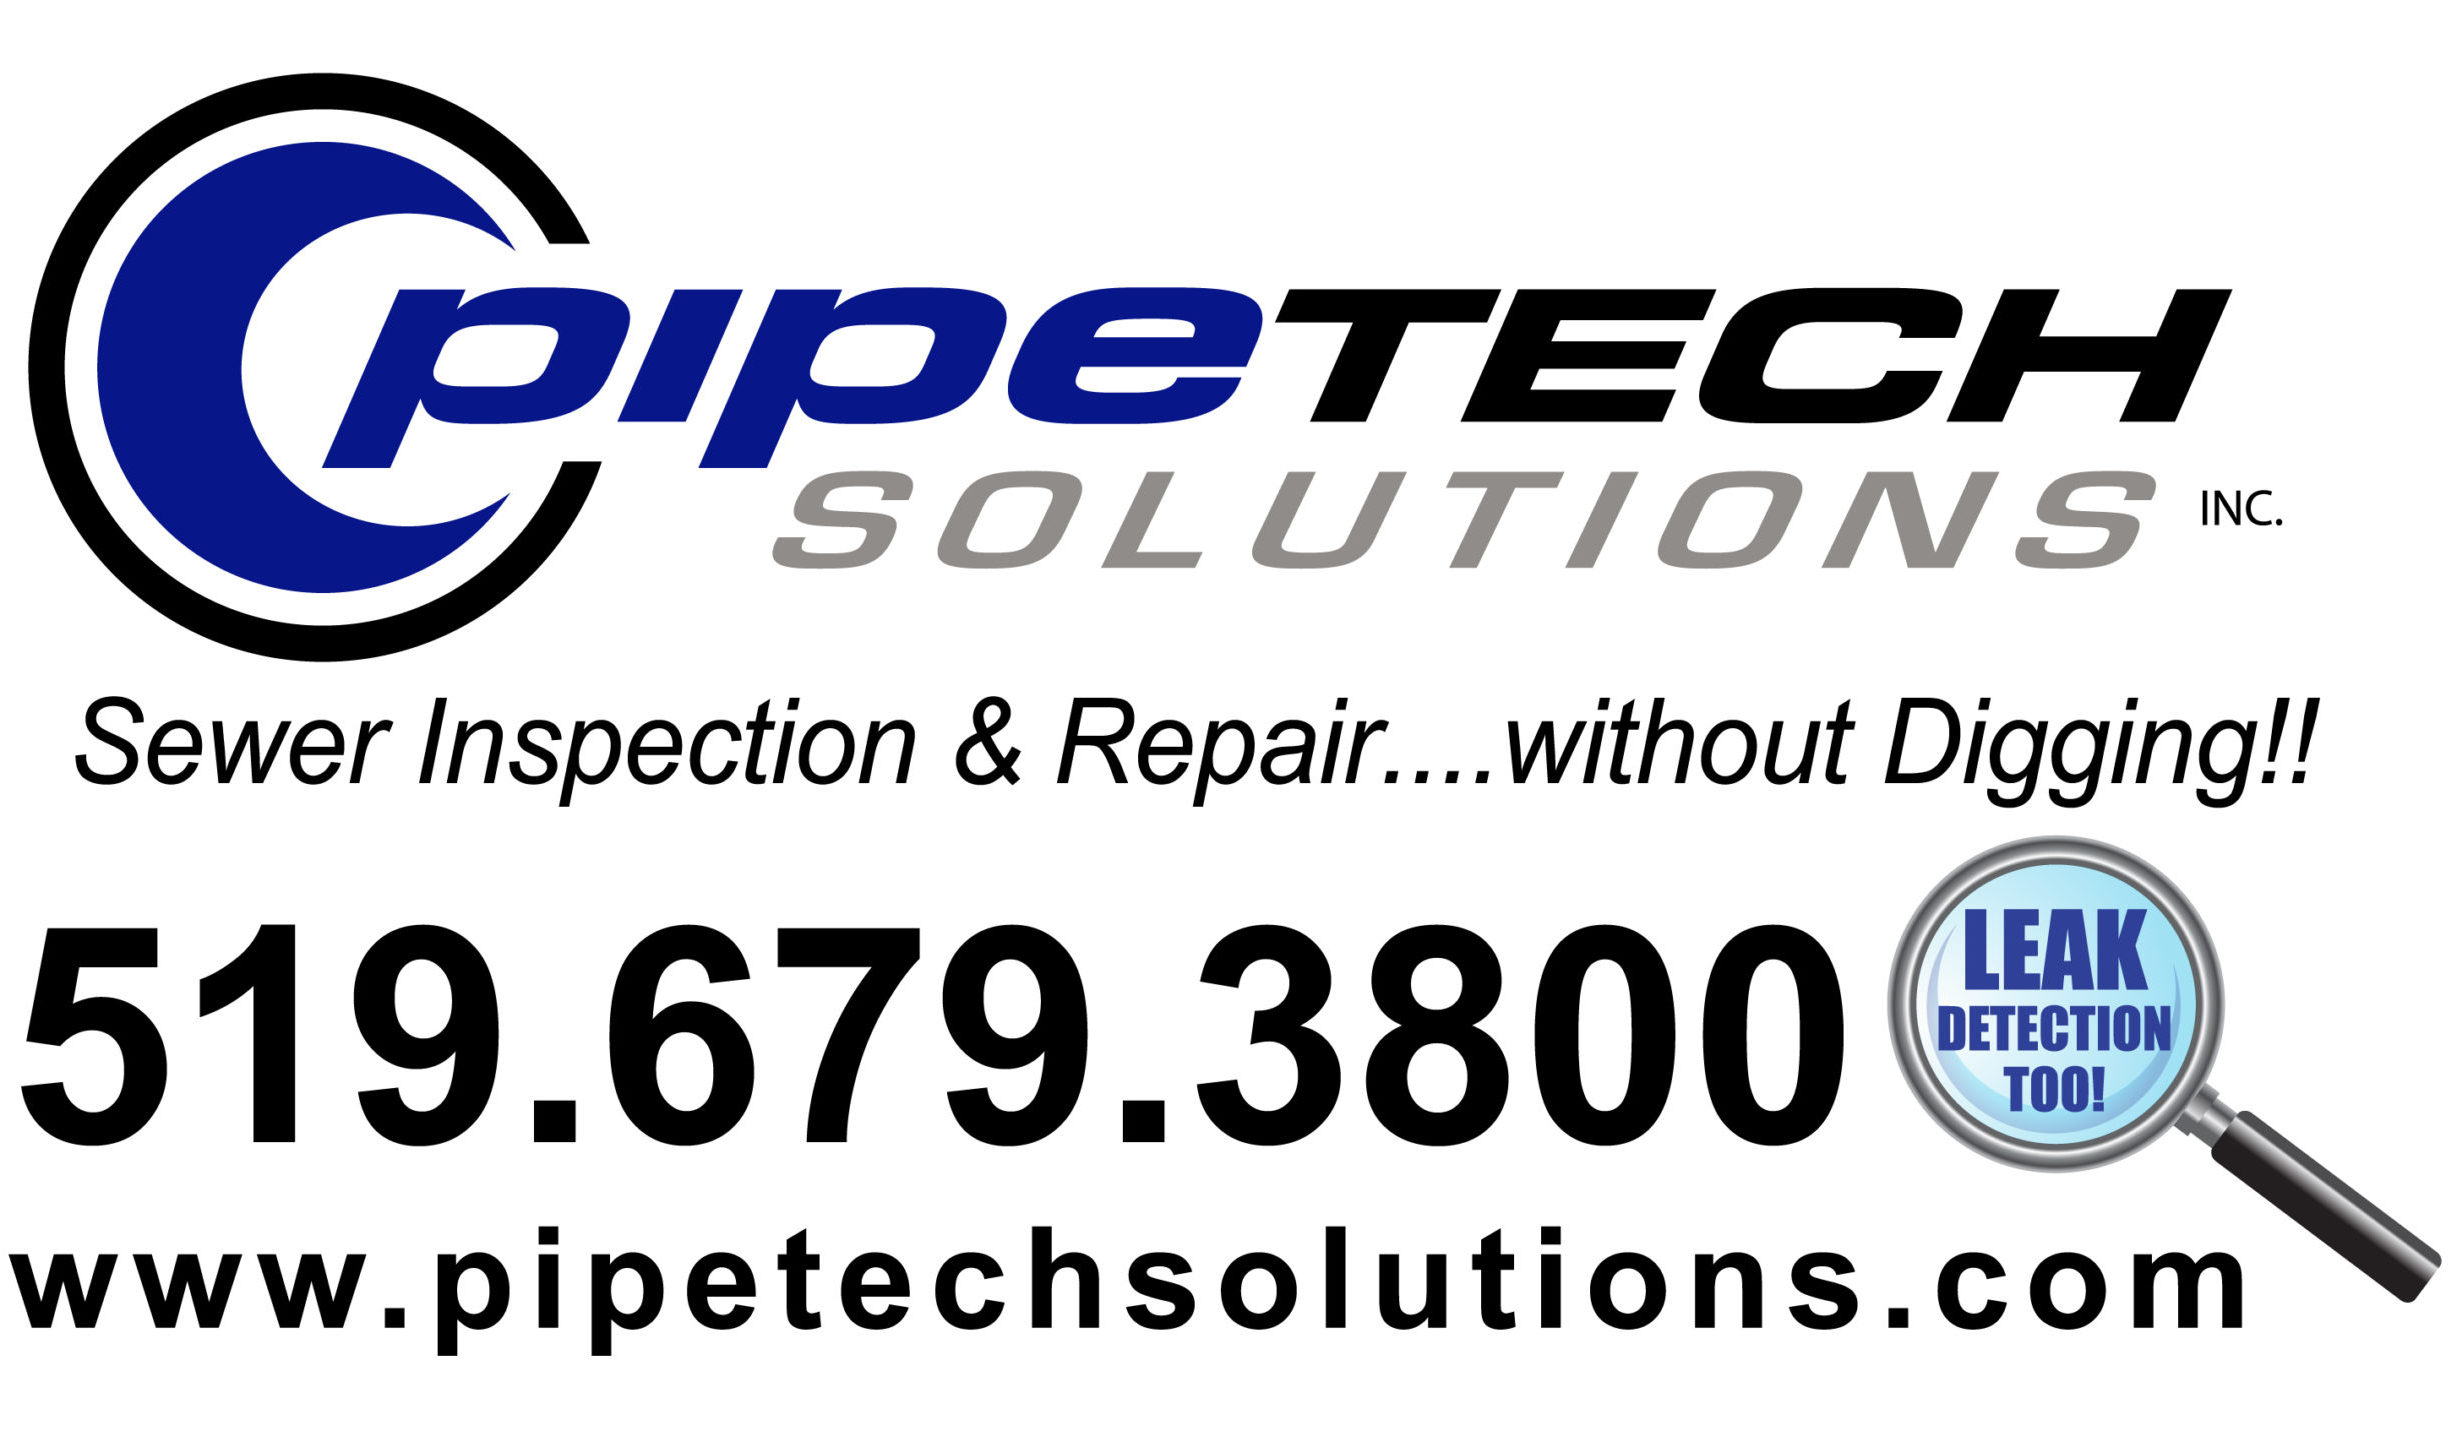 Pipetech Solutions